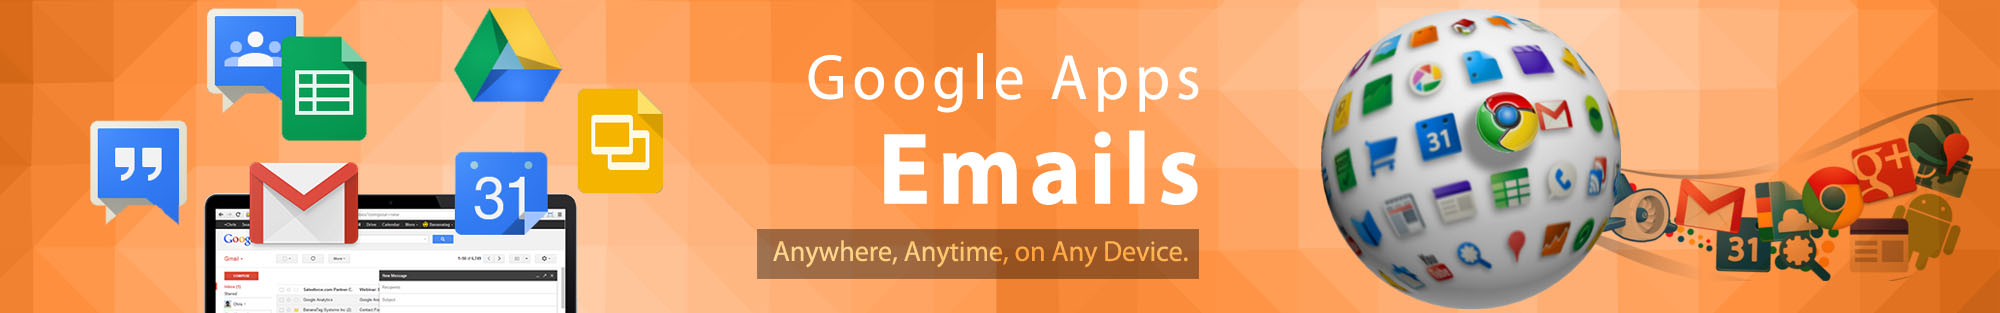 Google Apps Emails Mumbai